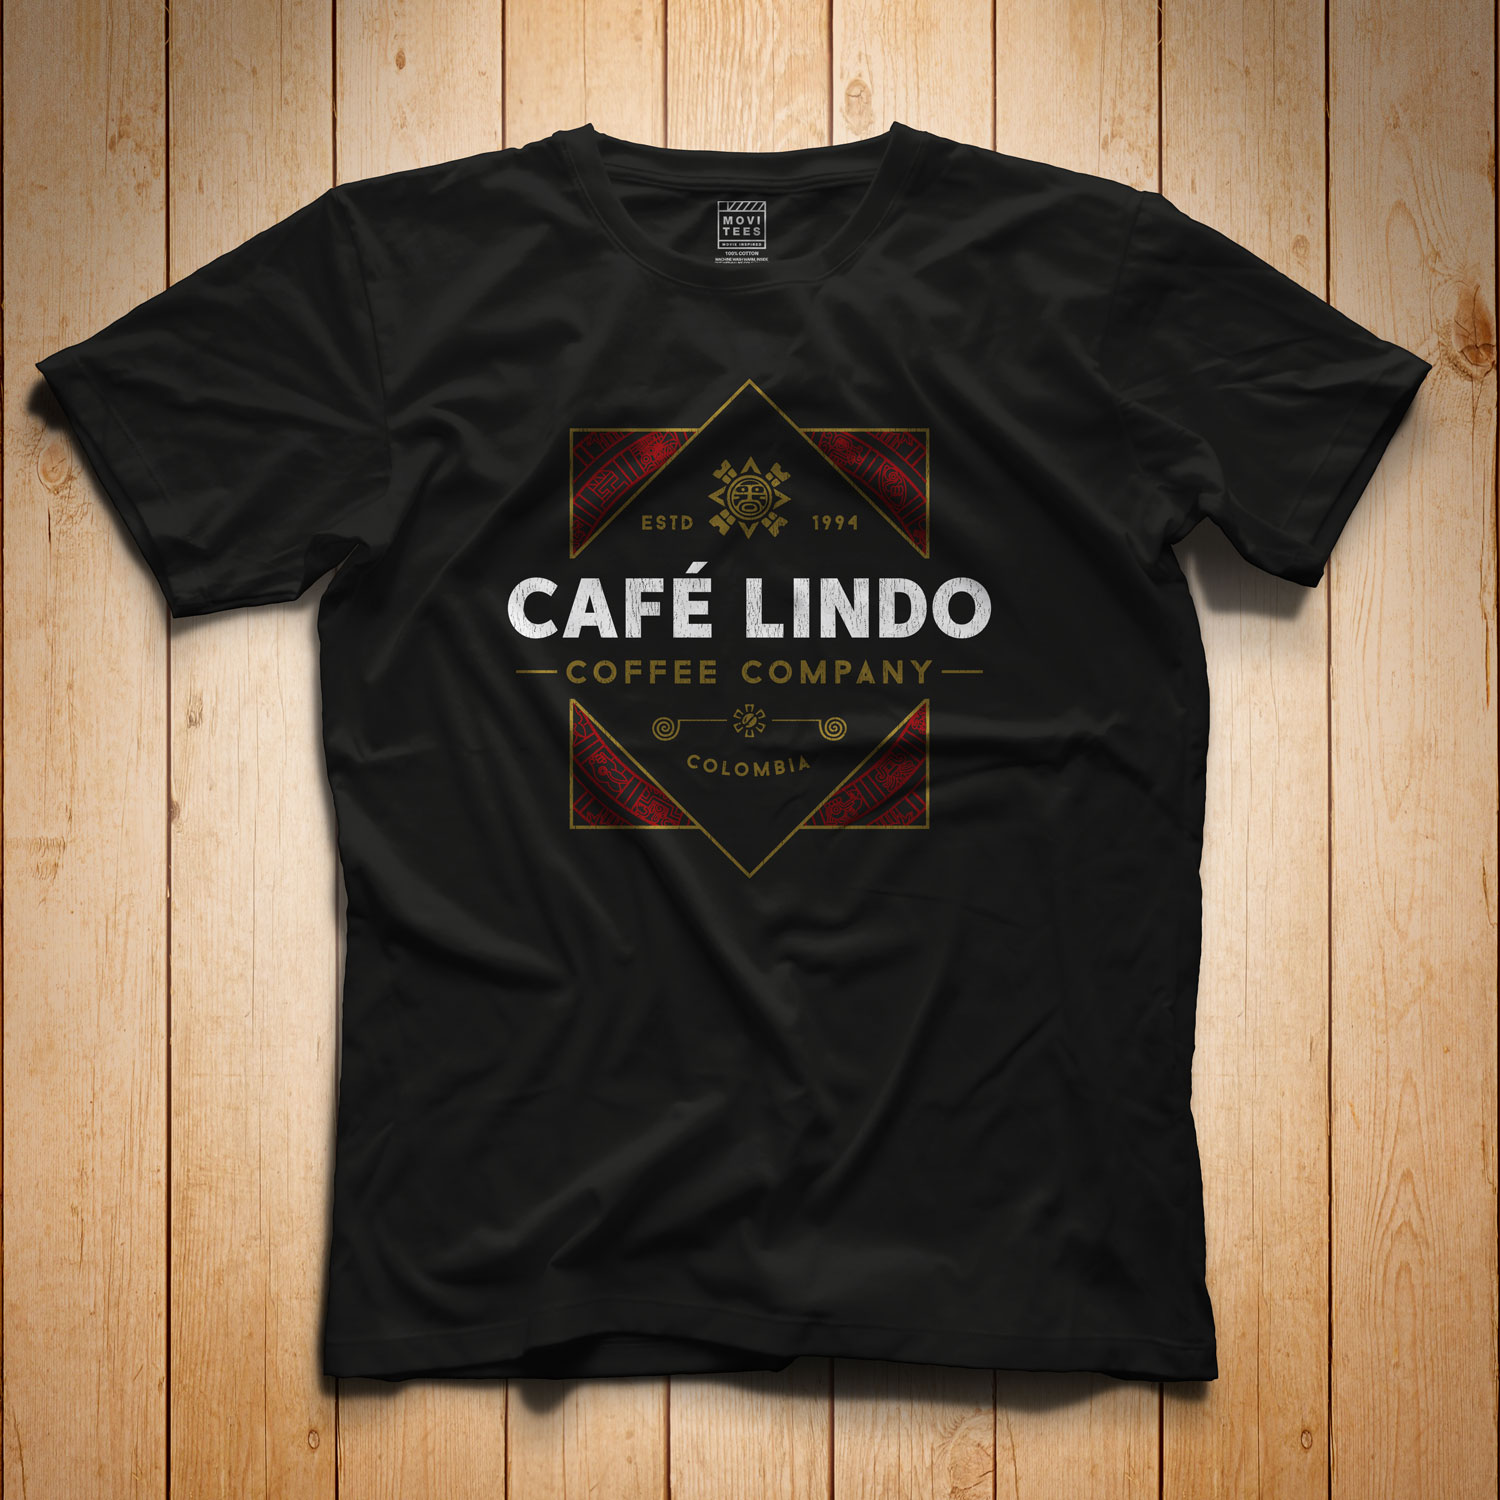 Cafe-Lindo-Clear-and-Present-Danger-Inspired-TShirt-by-MoviTees_B.jpg